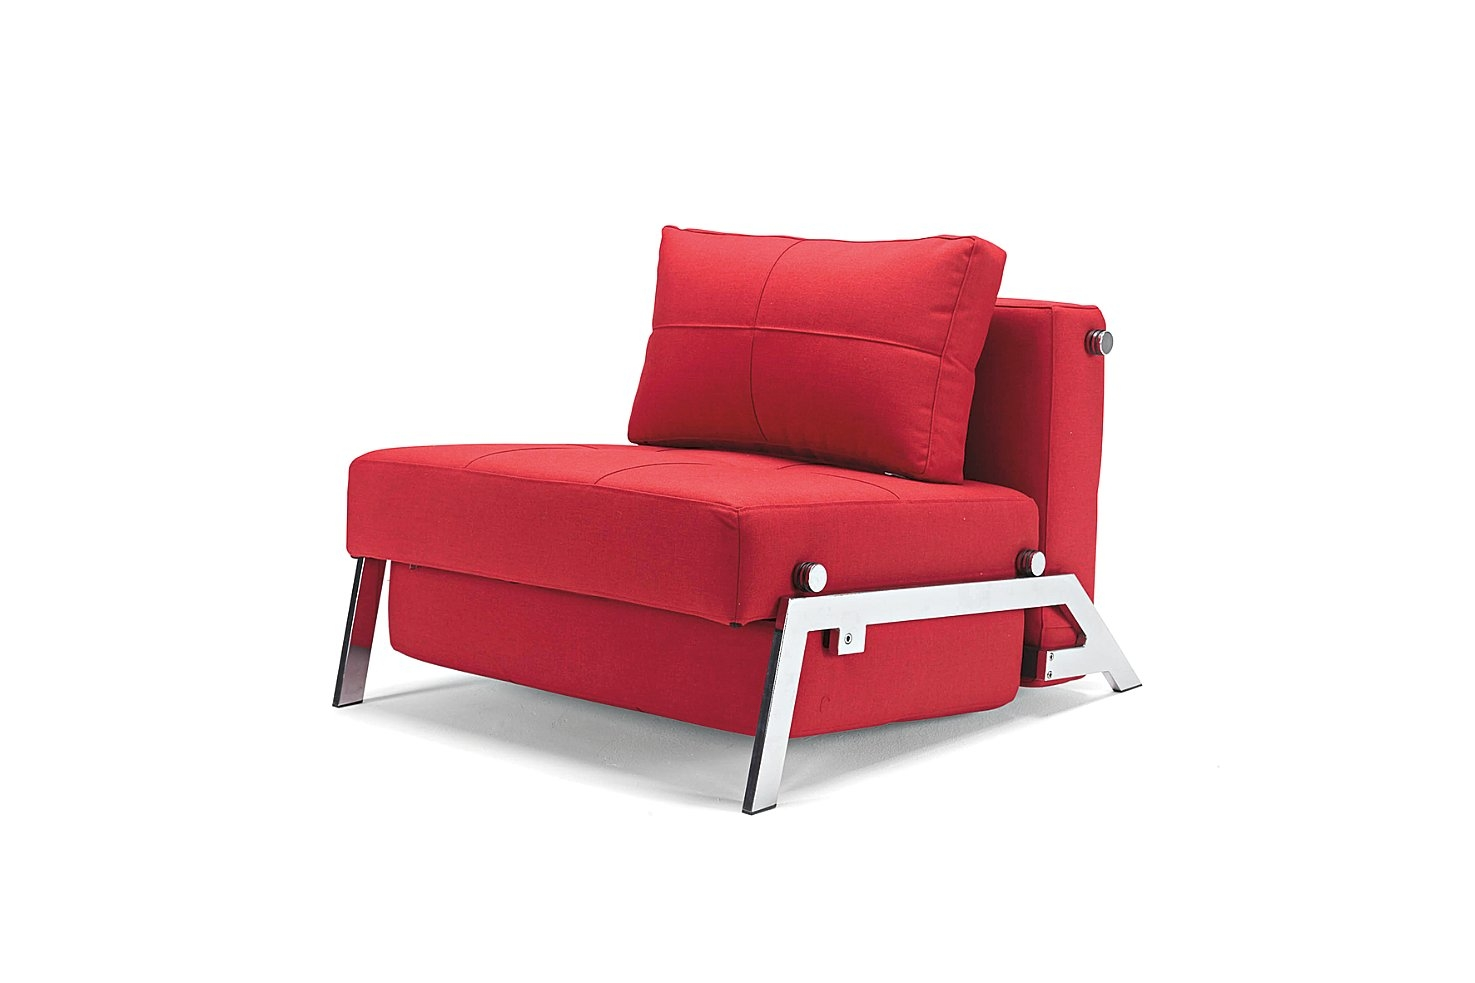 54 Single Sofa Bed Chair About Single Sofa Bed Chair On Pinterest With Single Chair Sofa Bed (Image 4 of 15)